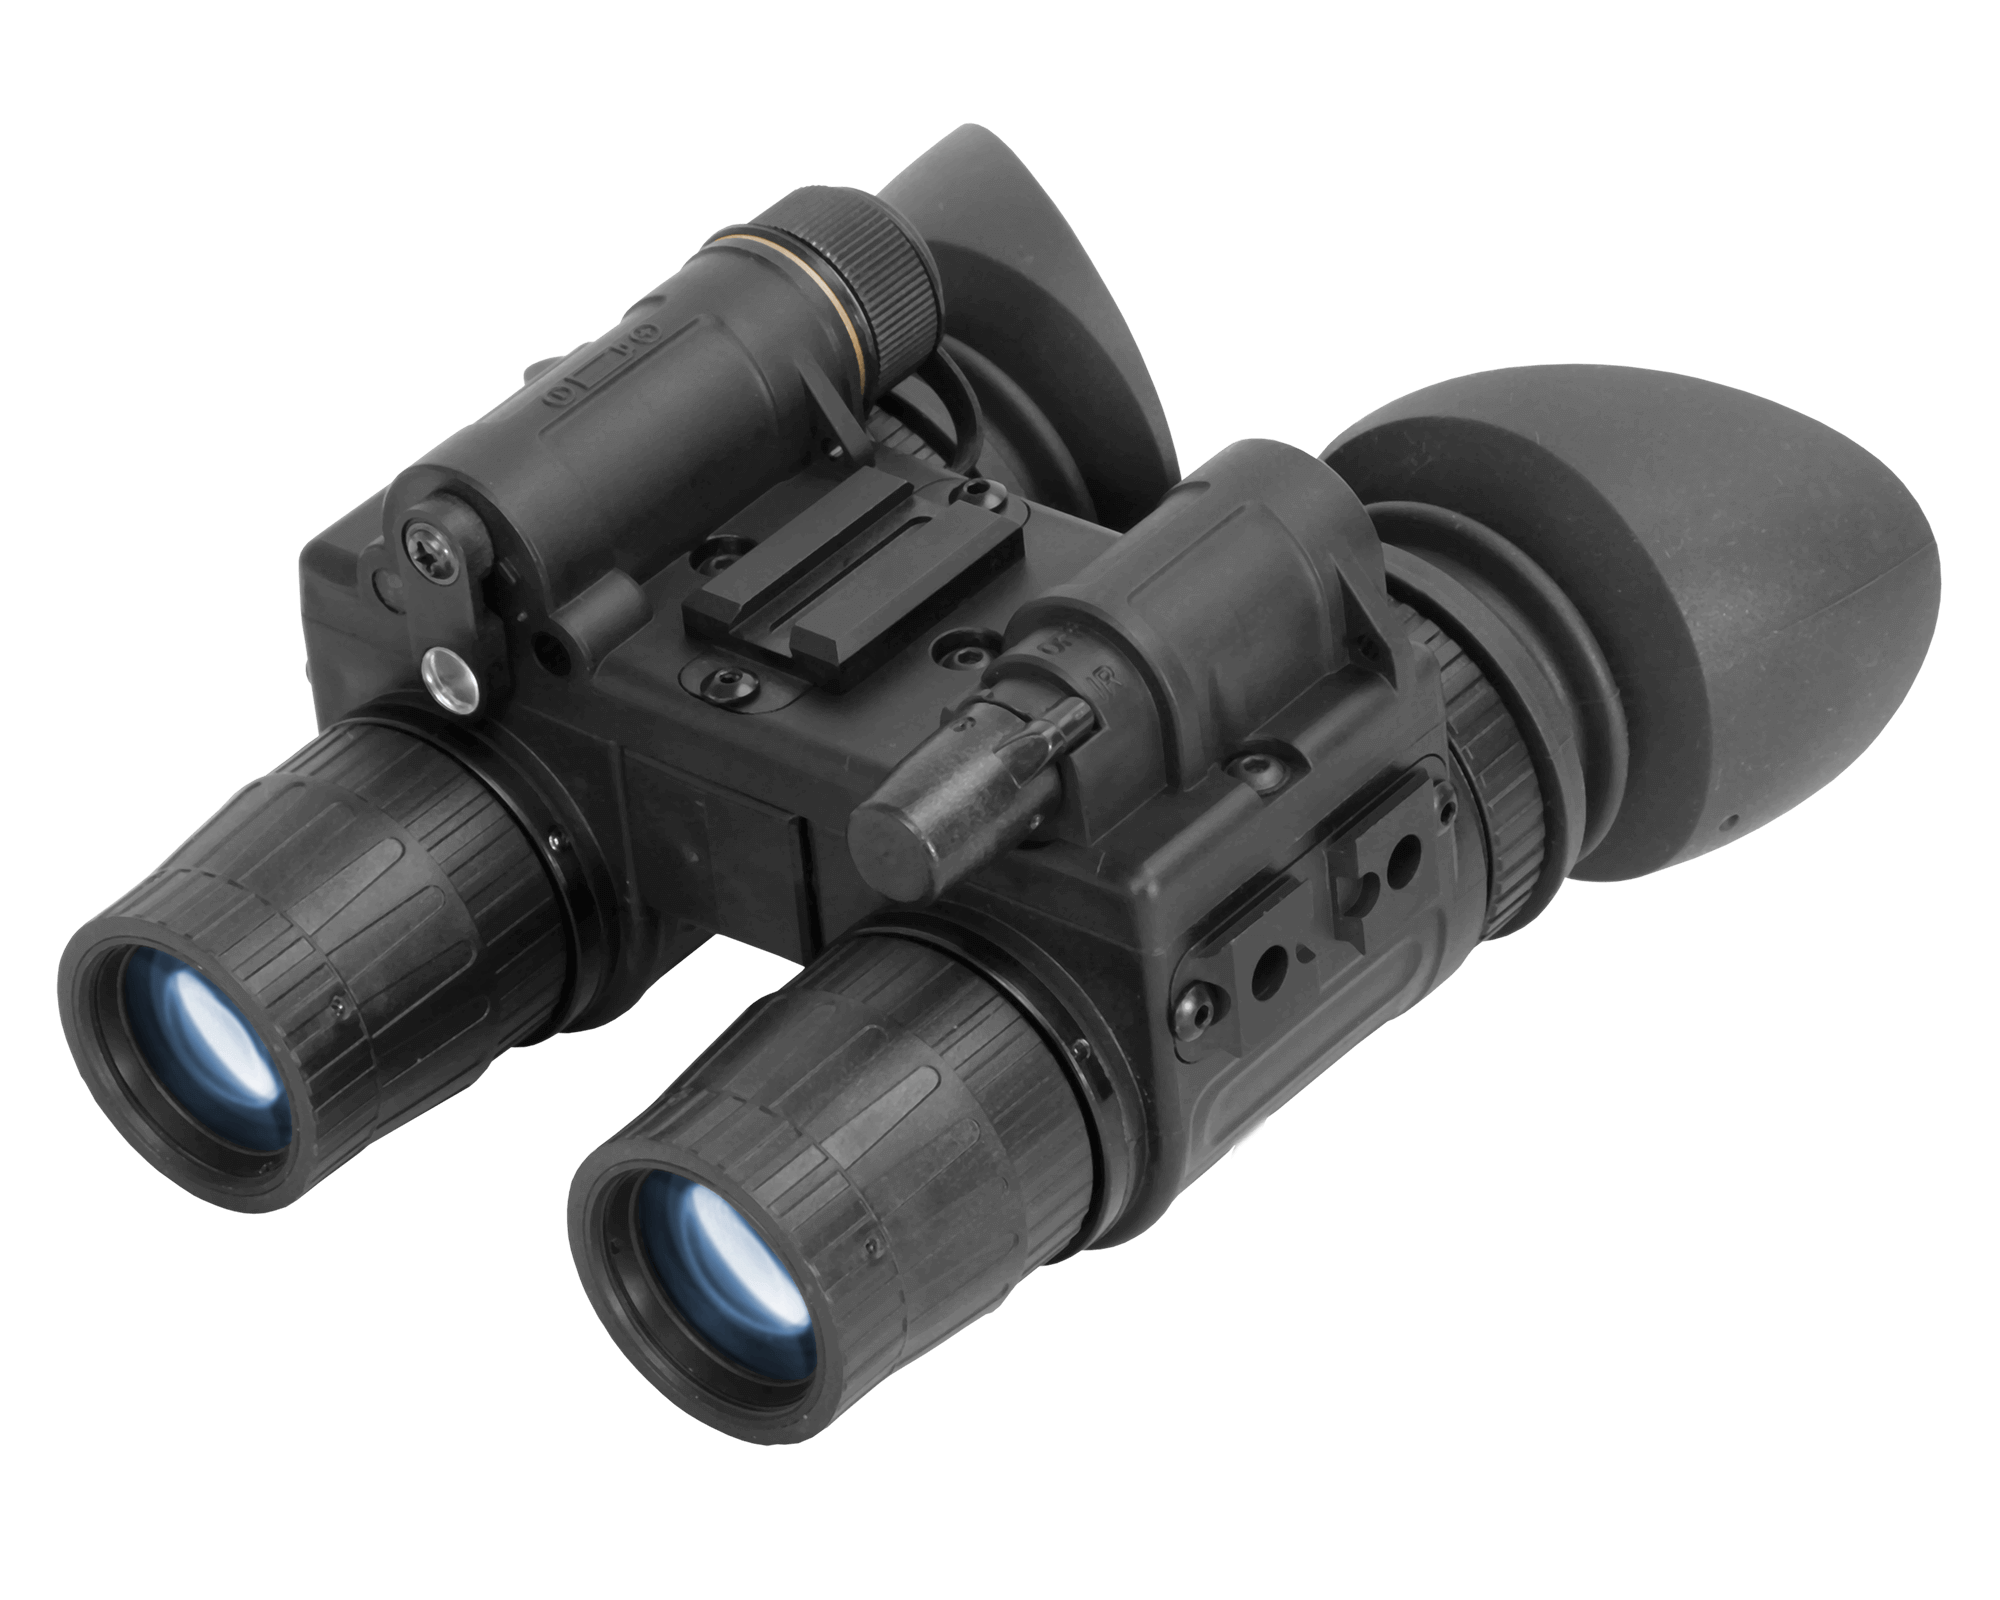 Atn Ps15 2 Night Vision Goggles Gen 2 From Atn Corp Nightvisiongogglesinfrared Night Vision Night Sights Thermal Imaging